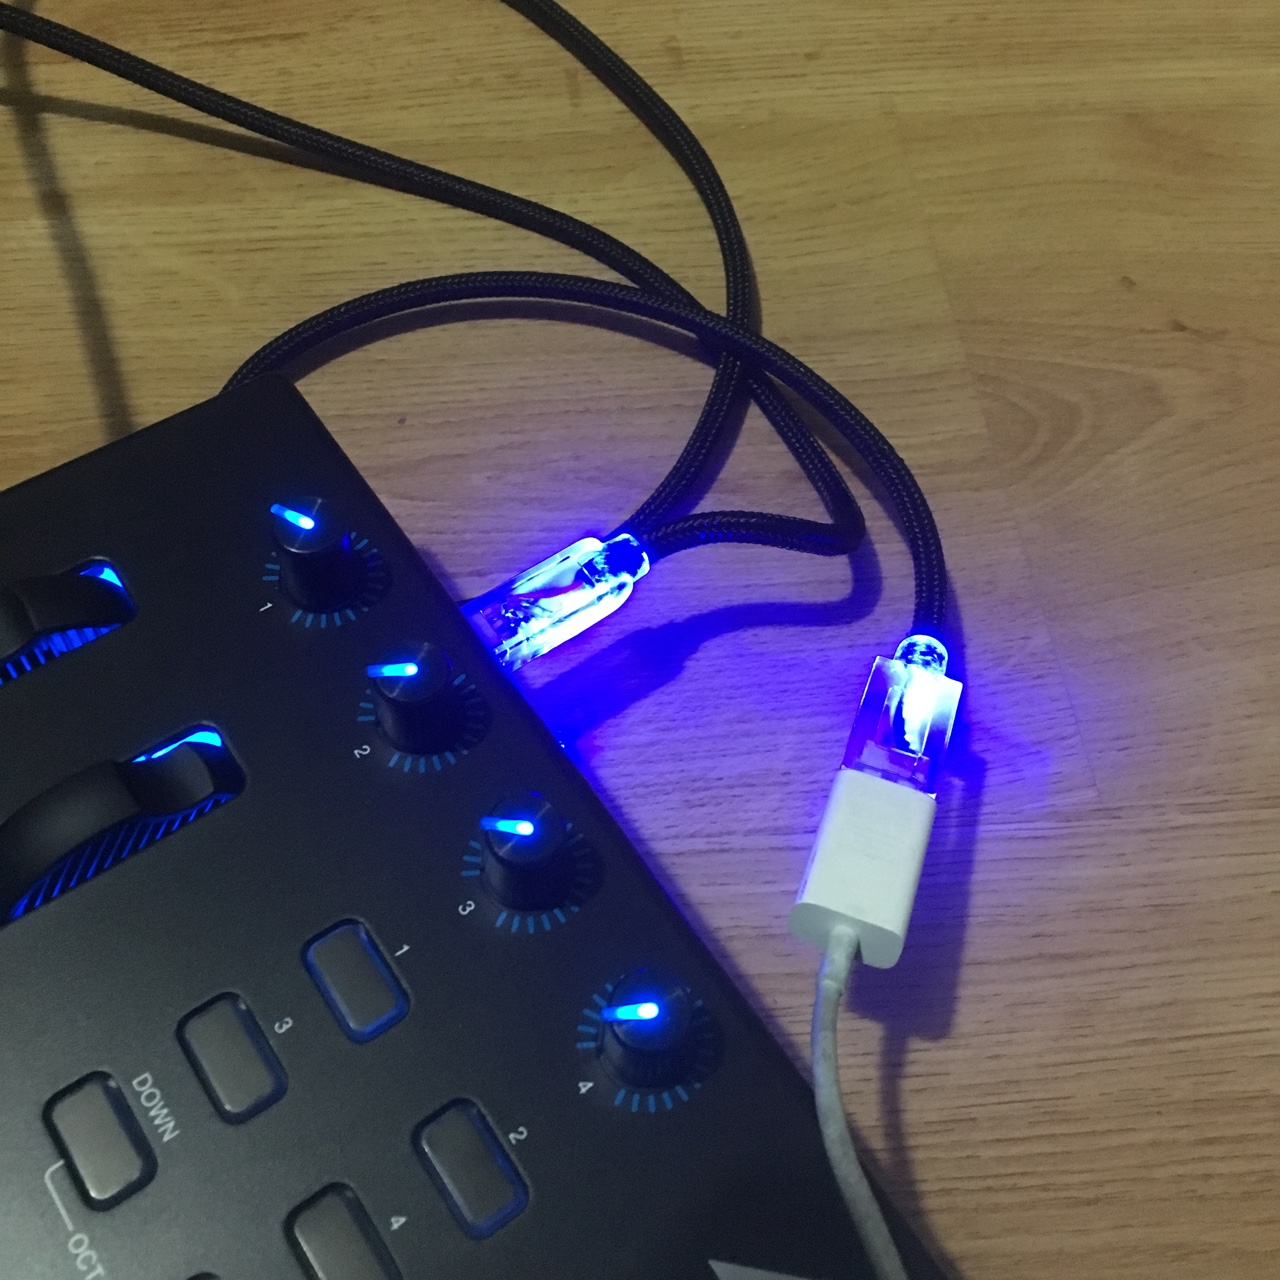 6ft USB 2.0 A-B Purple Cable